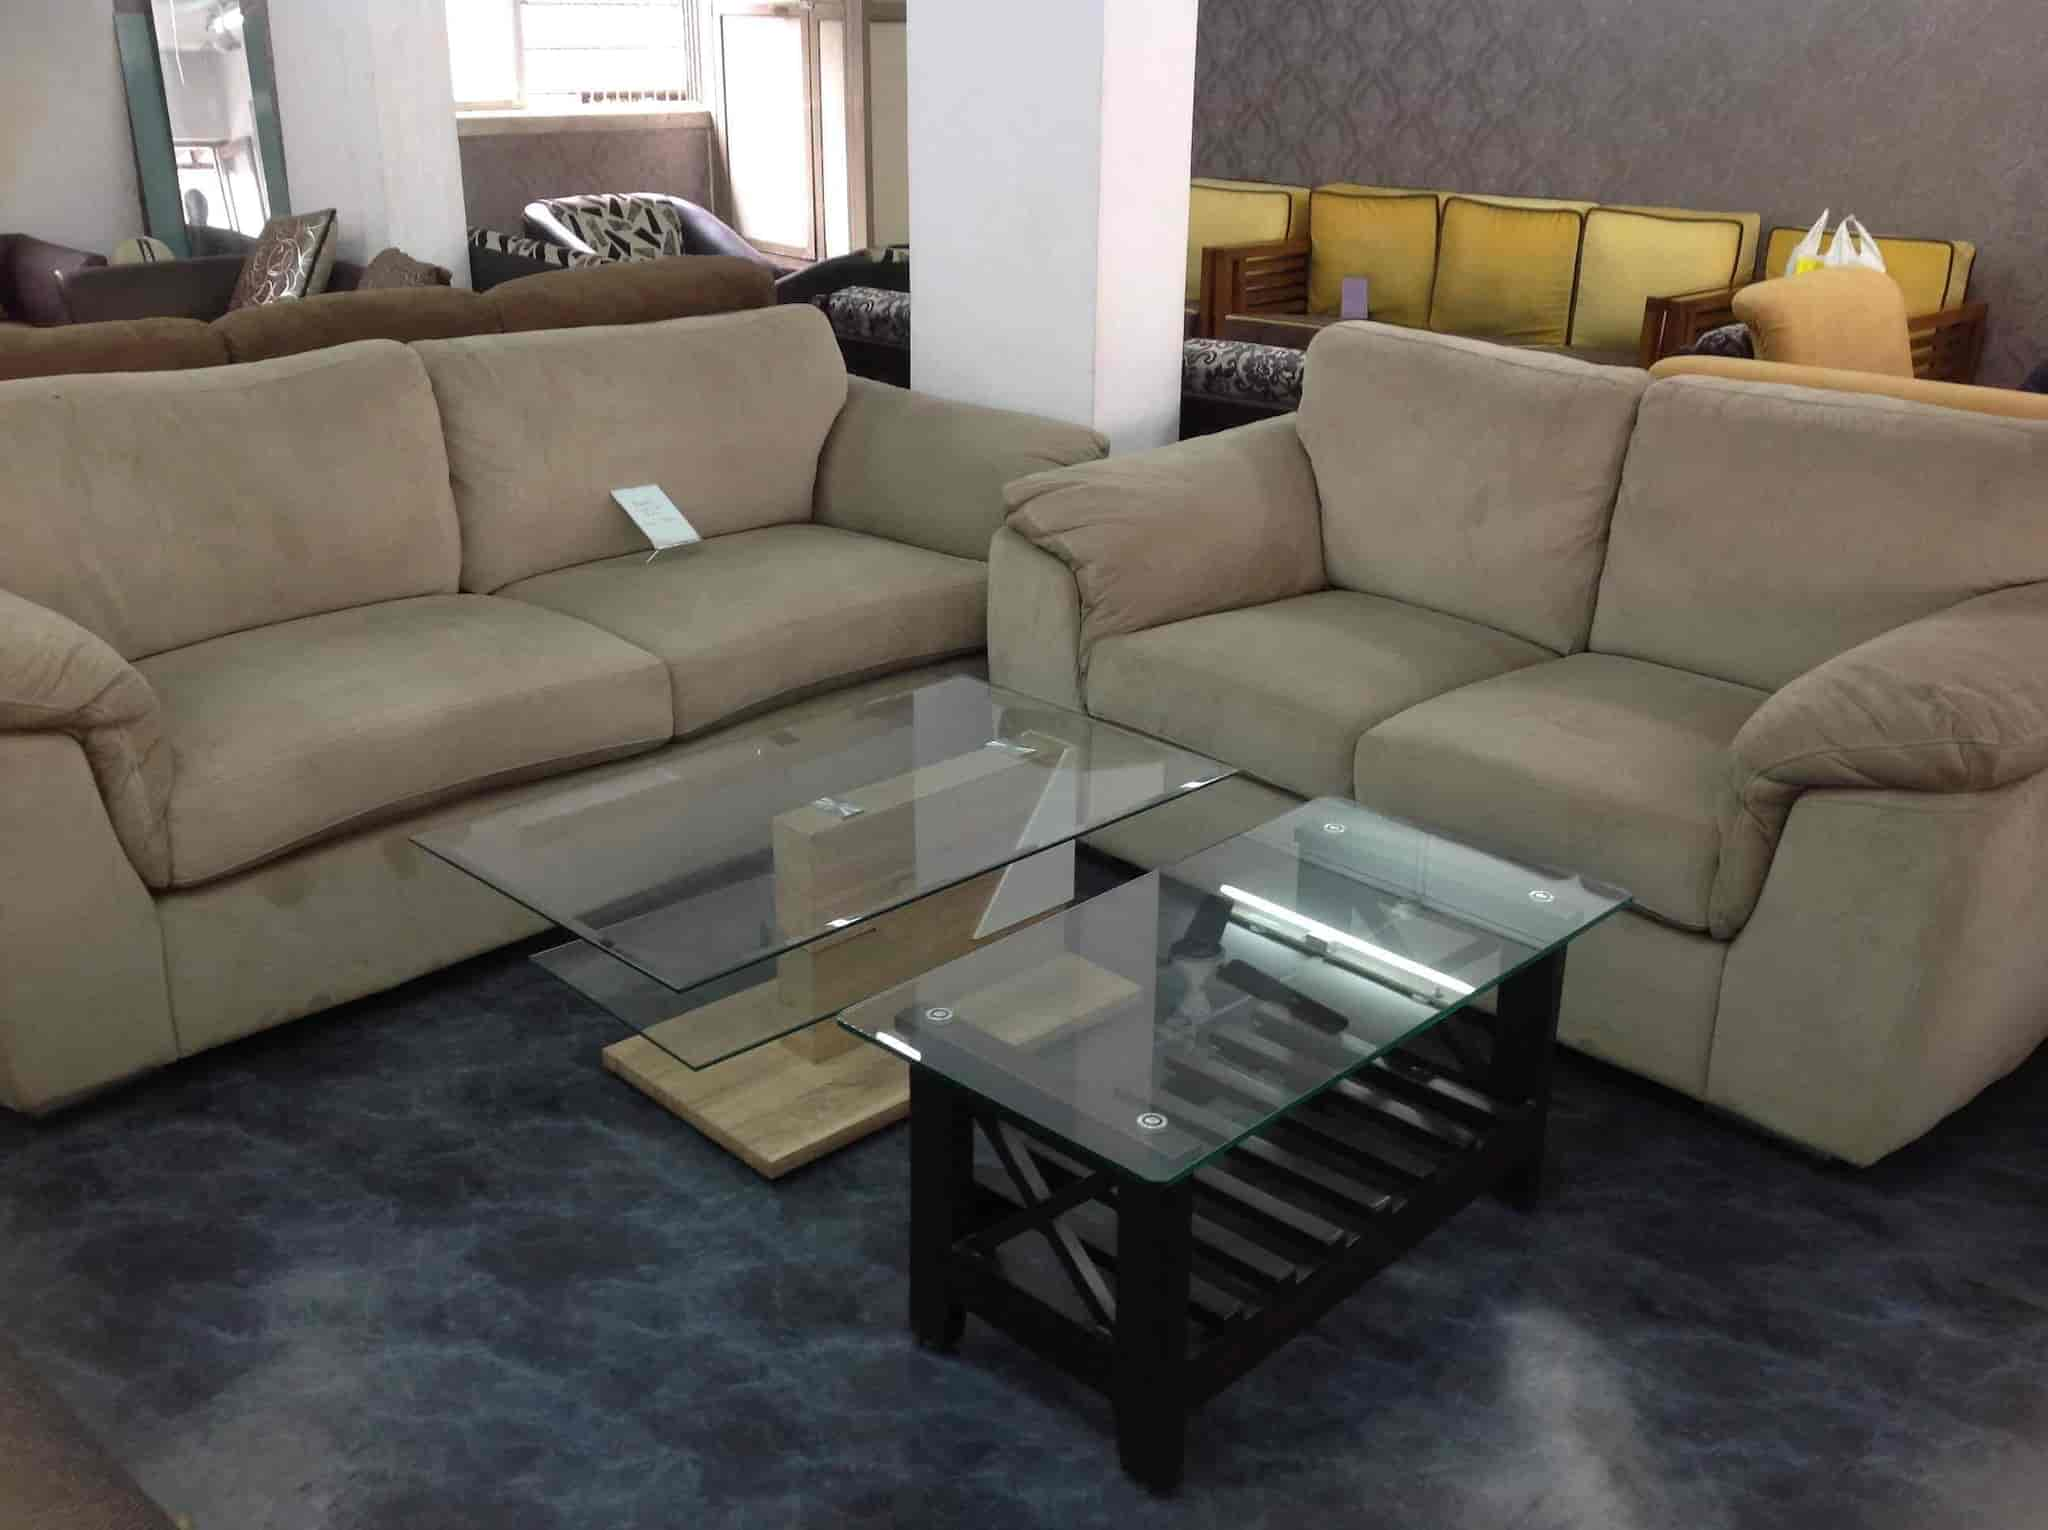 Sofa Set Offers In Mumbai Delite Furniture Photos Thane West Mumbai Pictures Images